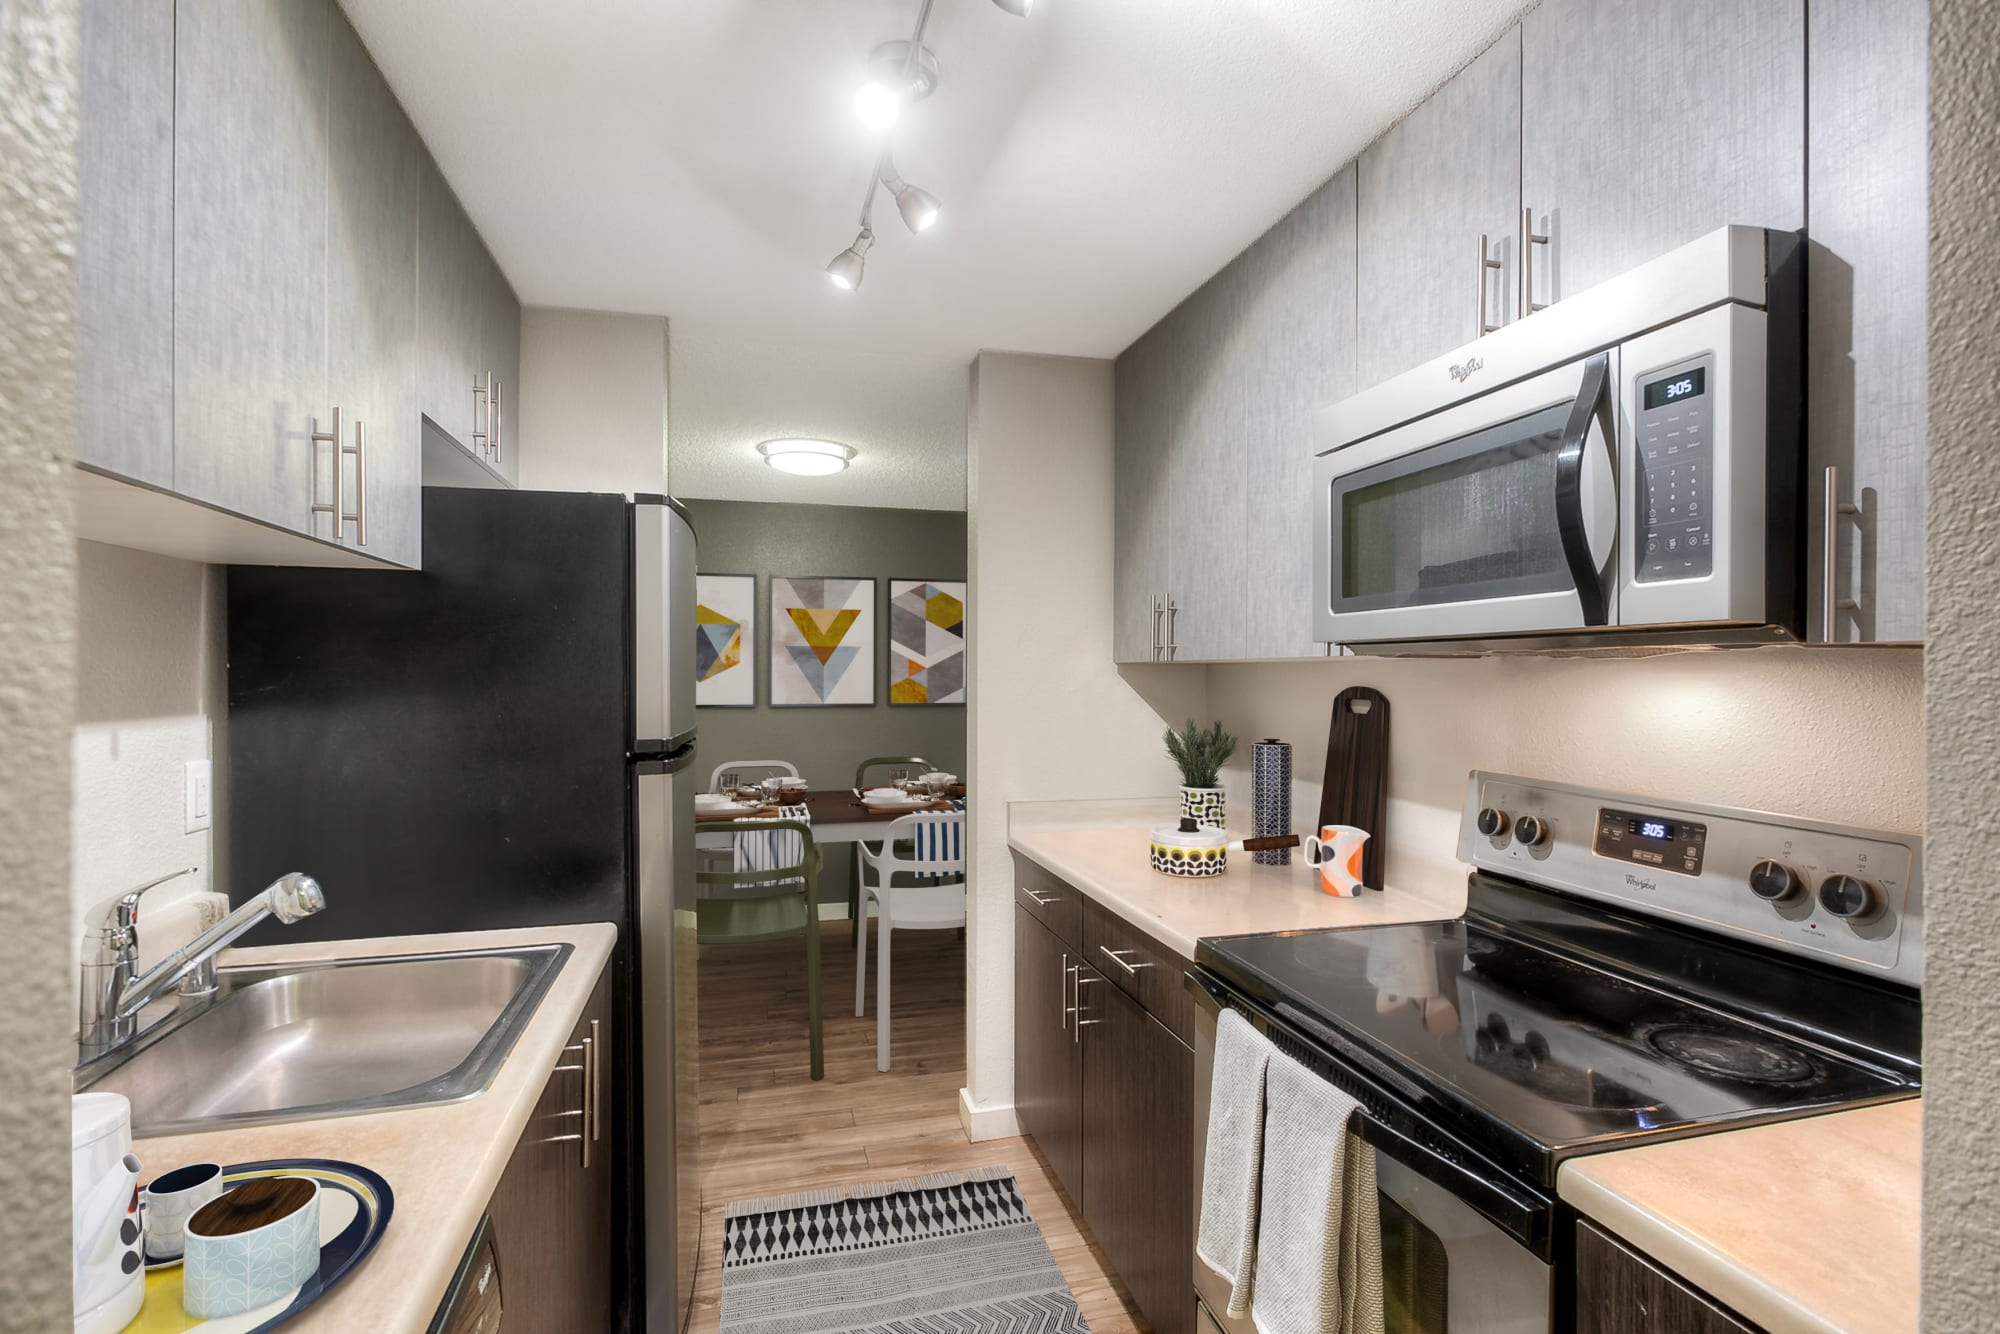 Renovated kitchen with stainless steel appliances at Karbon Apartments in Newcastle, Washington